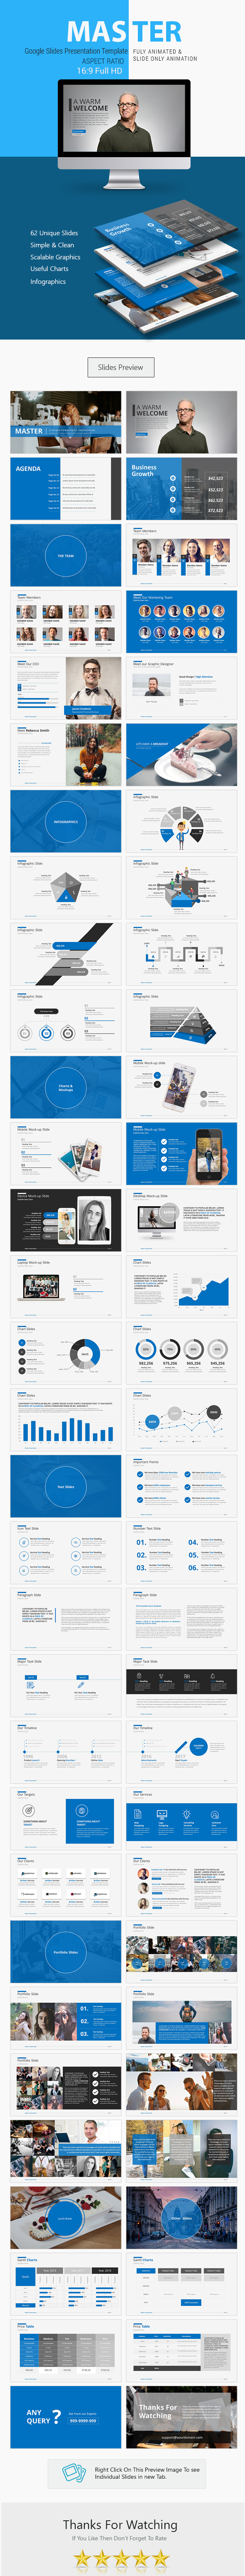 Master Google Slides Presentation - Google Slides Presentation Templates